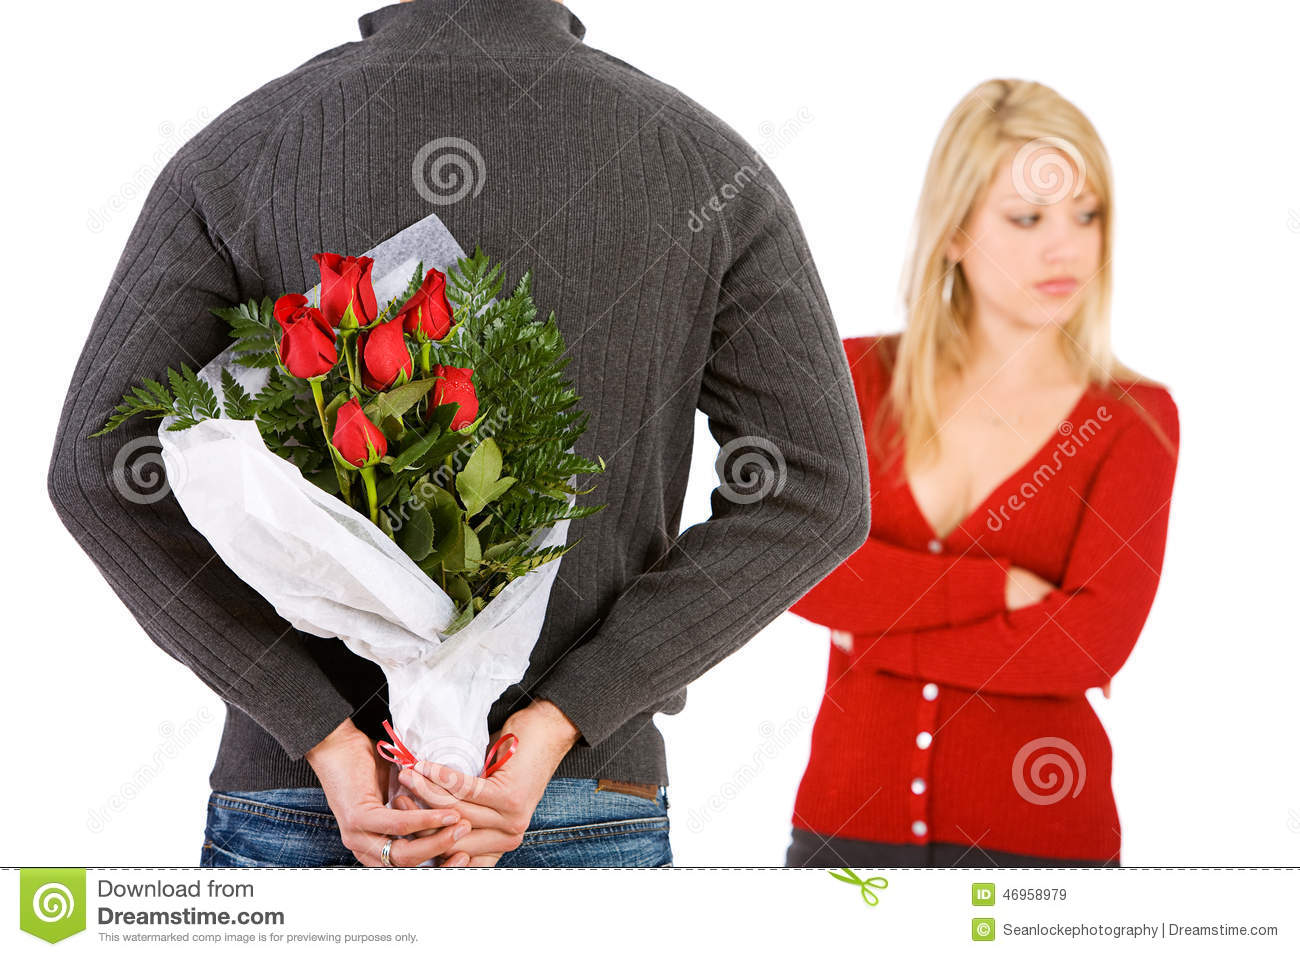 When a man buys a woman flowers